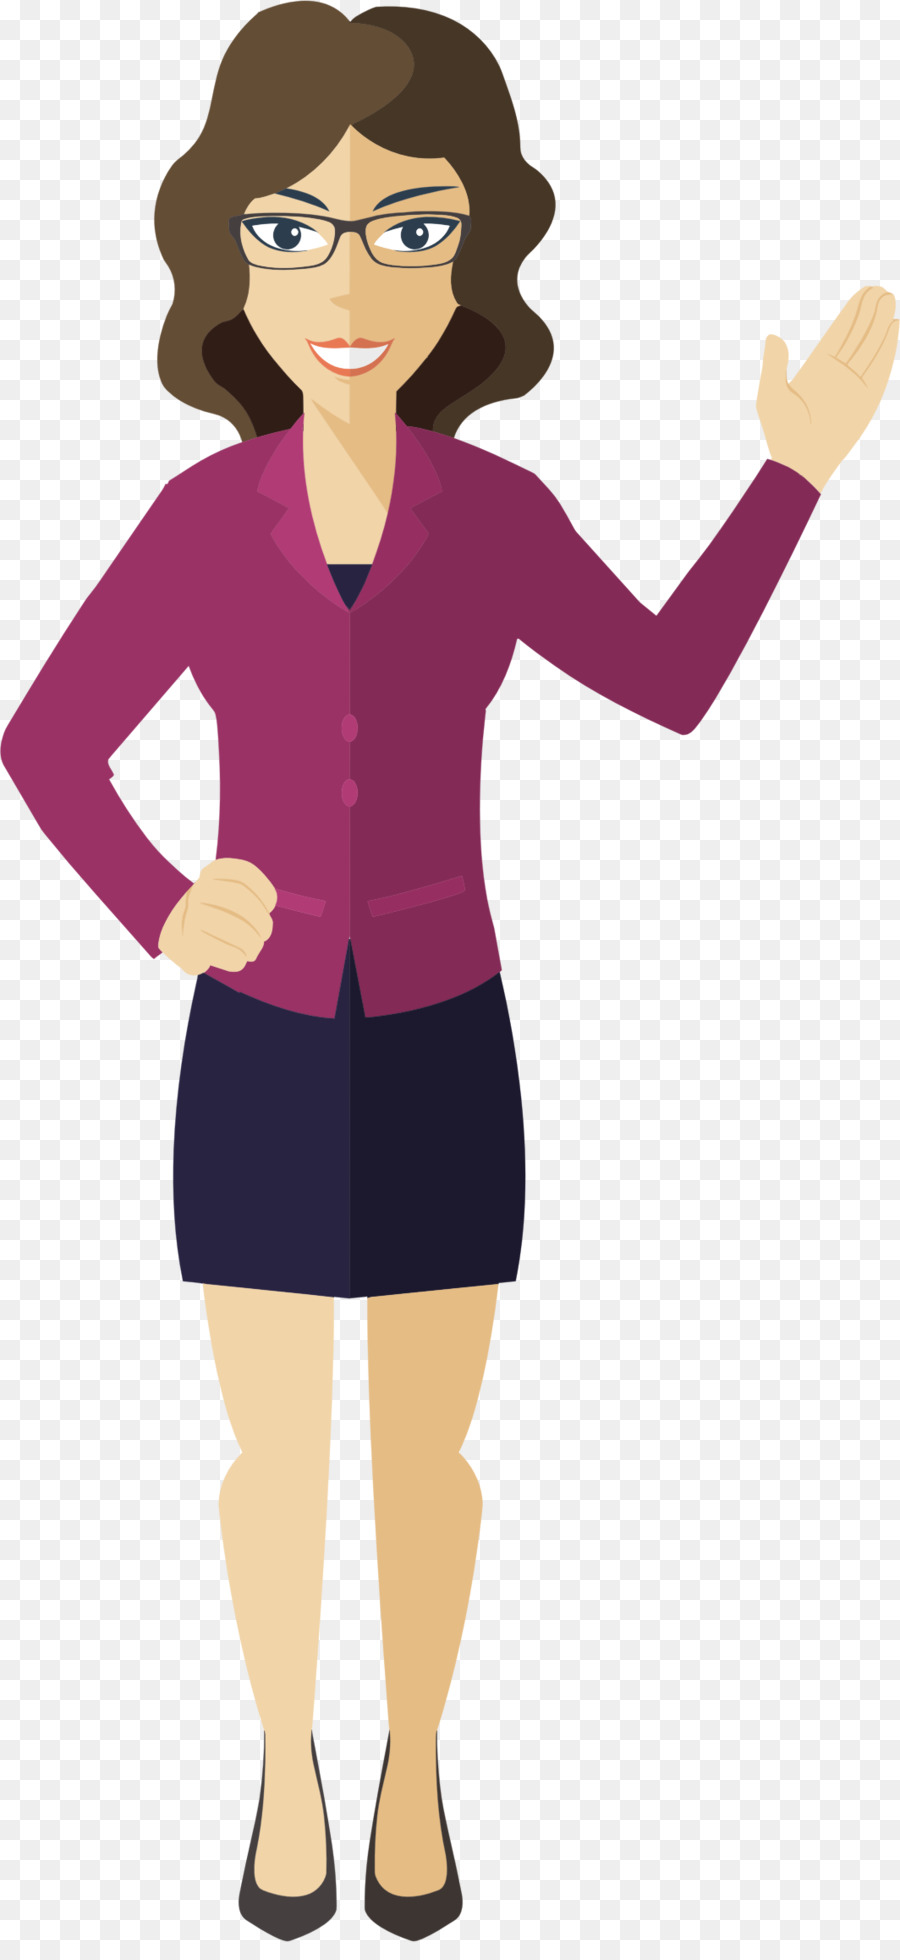 Lady clipart transparent. Free girl download clip